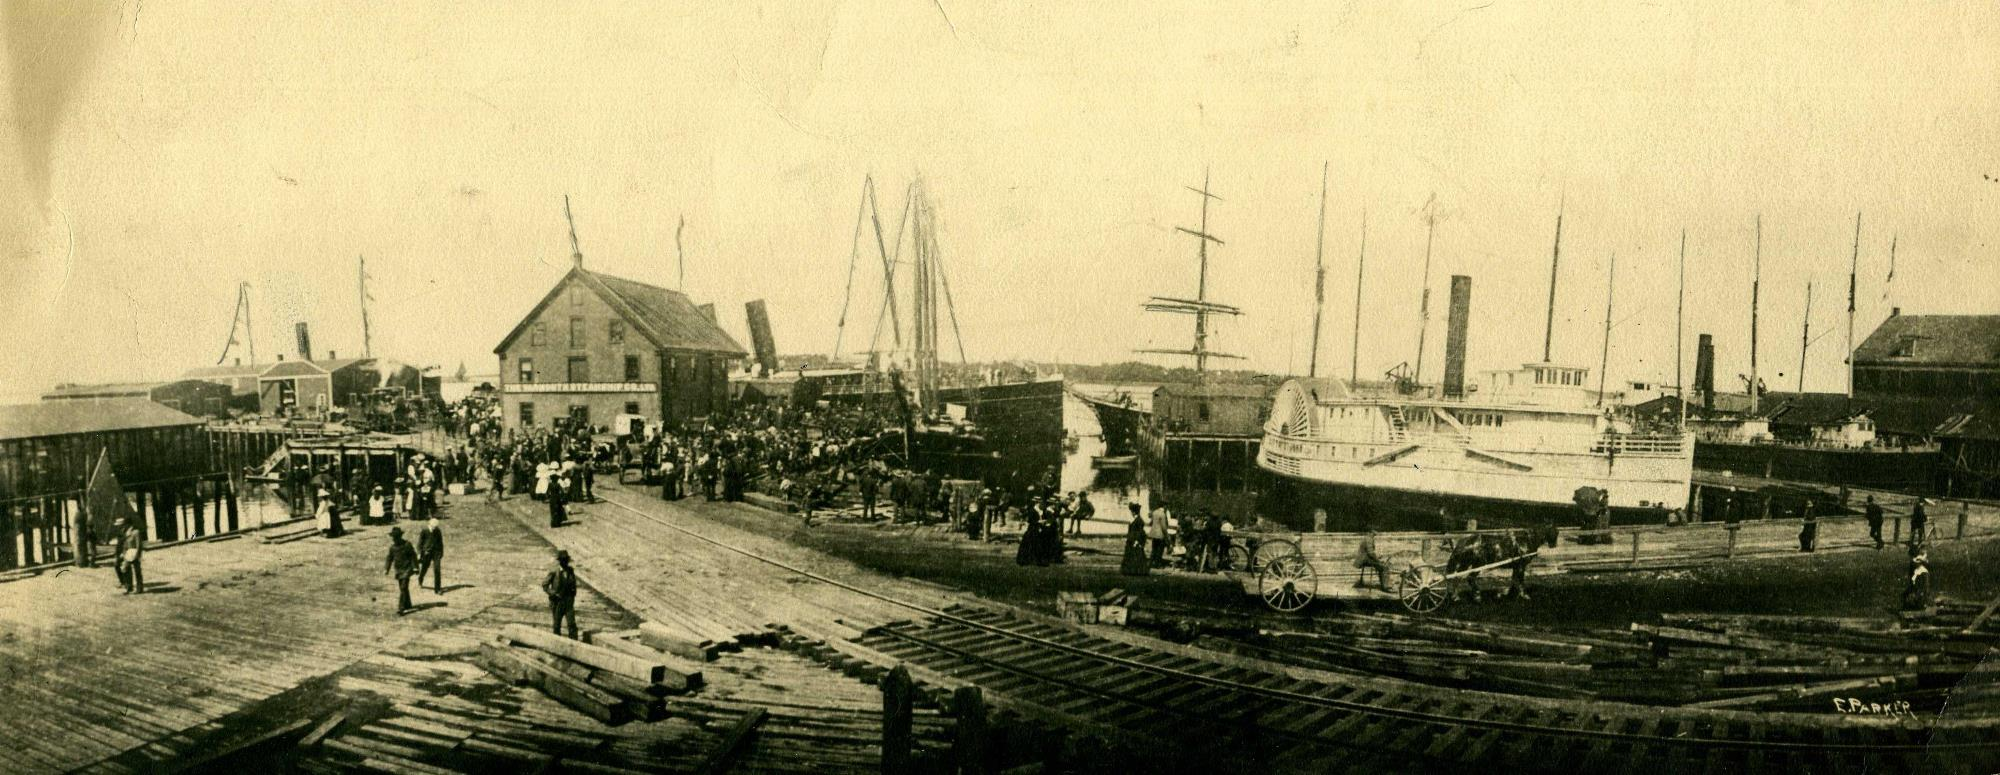 Boston-bound Steamers In Yarmouth Harbor, 1900